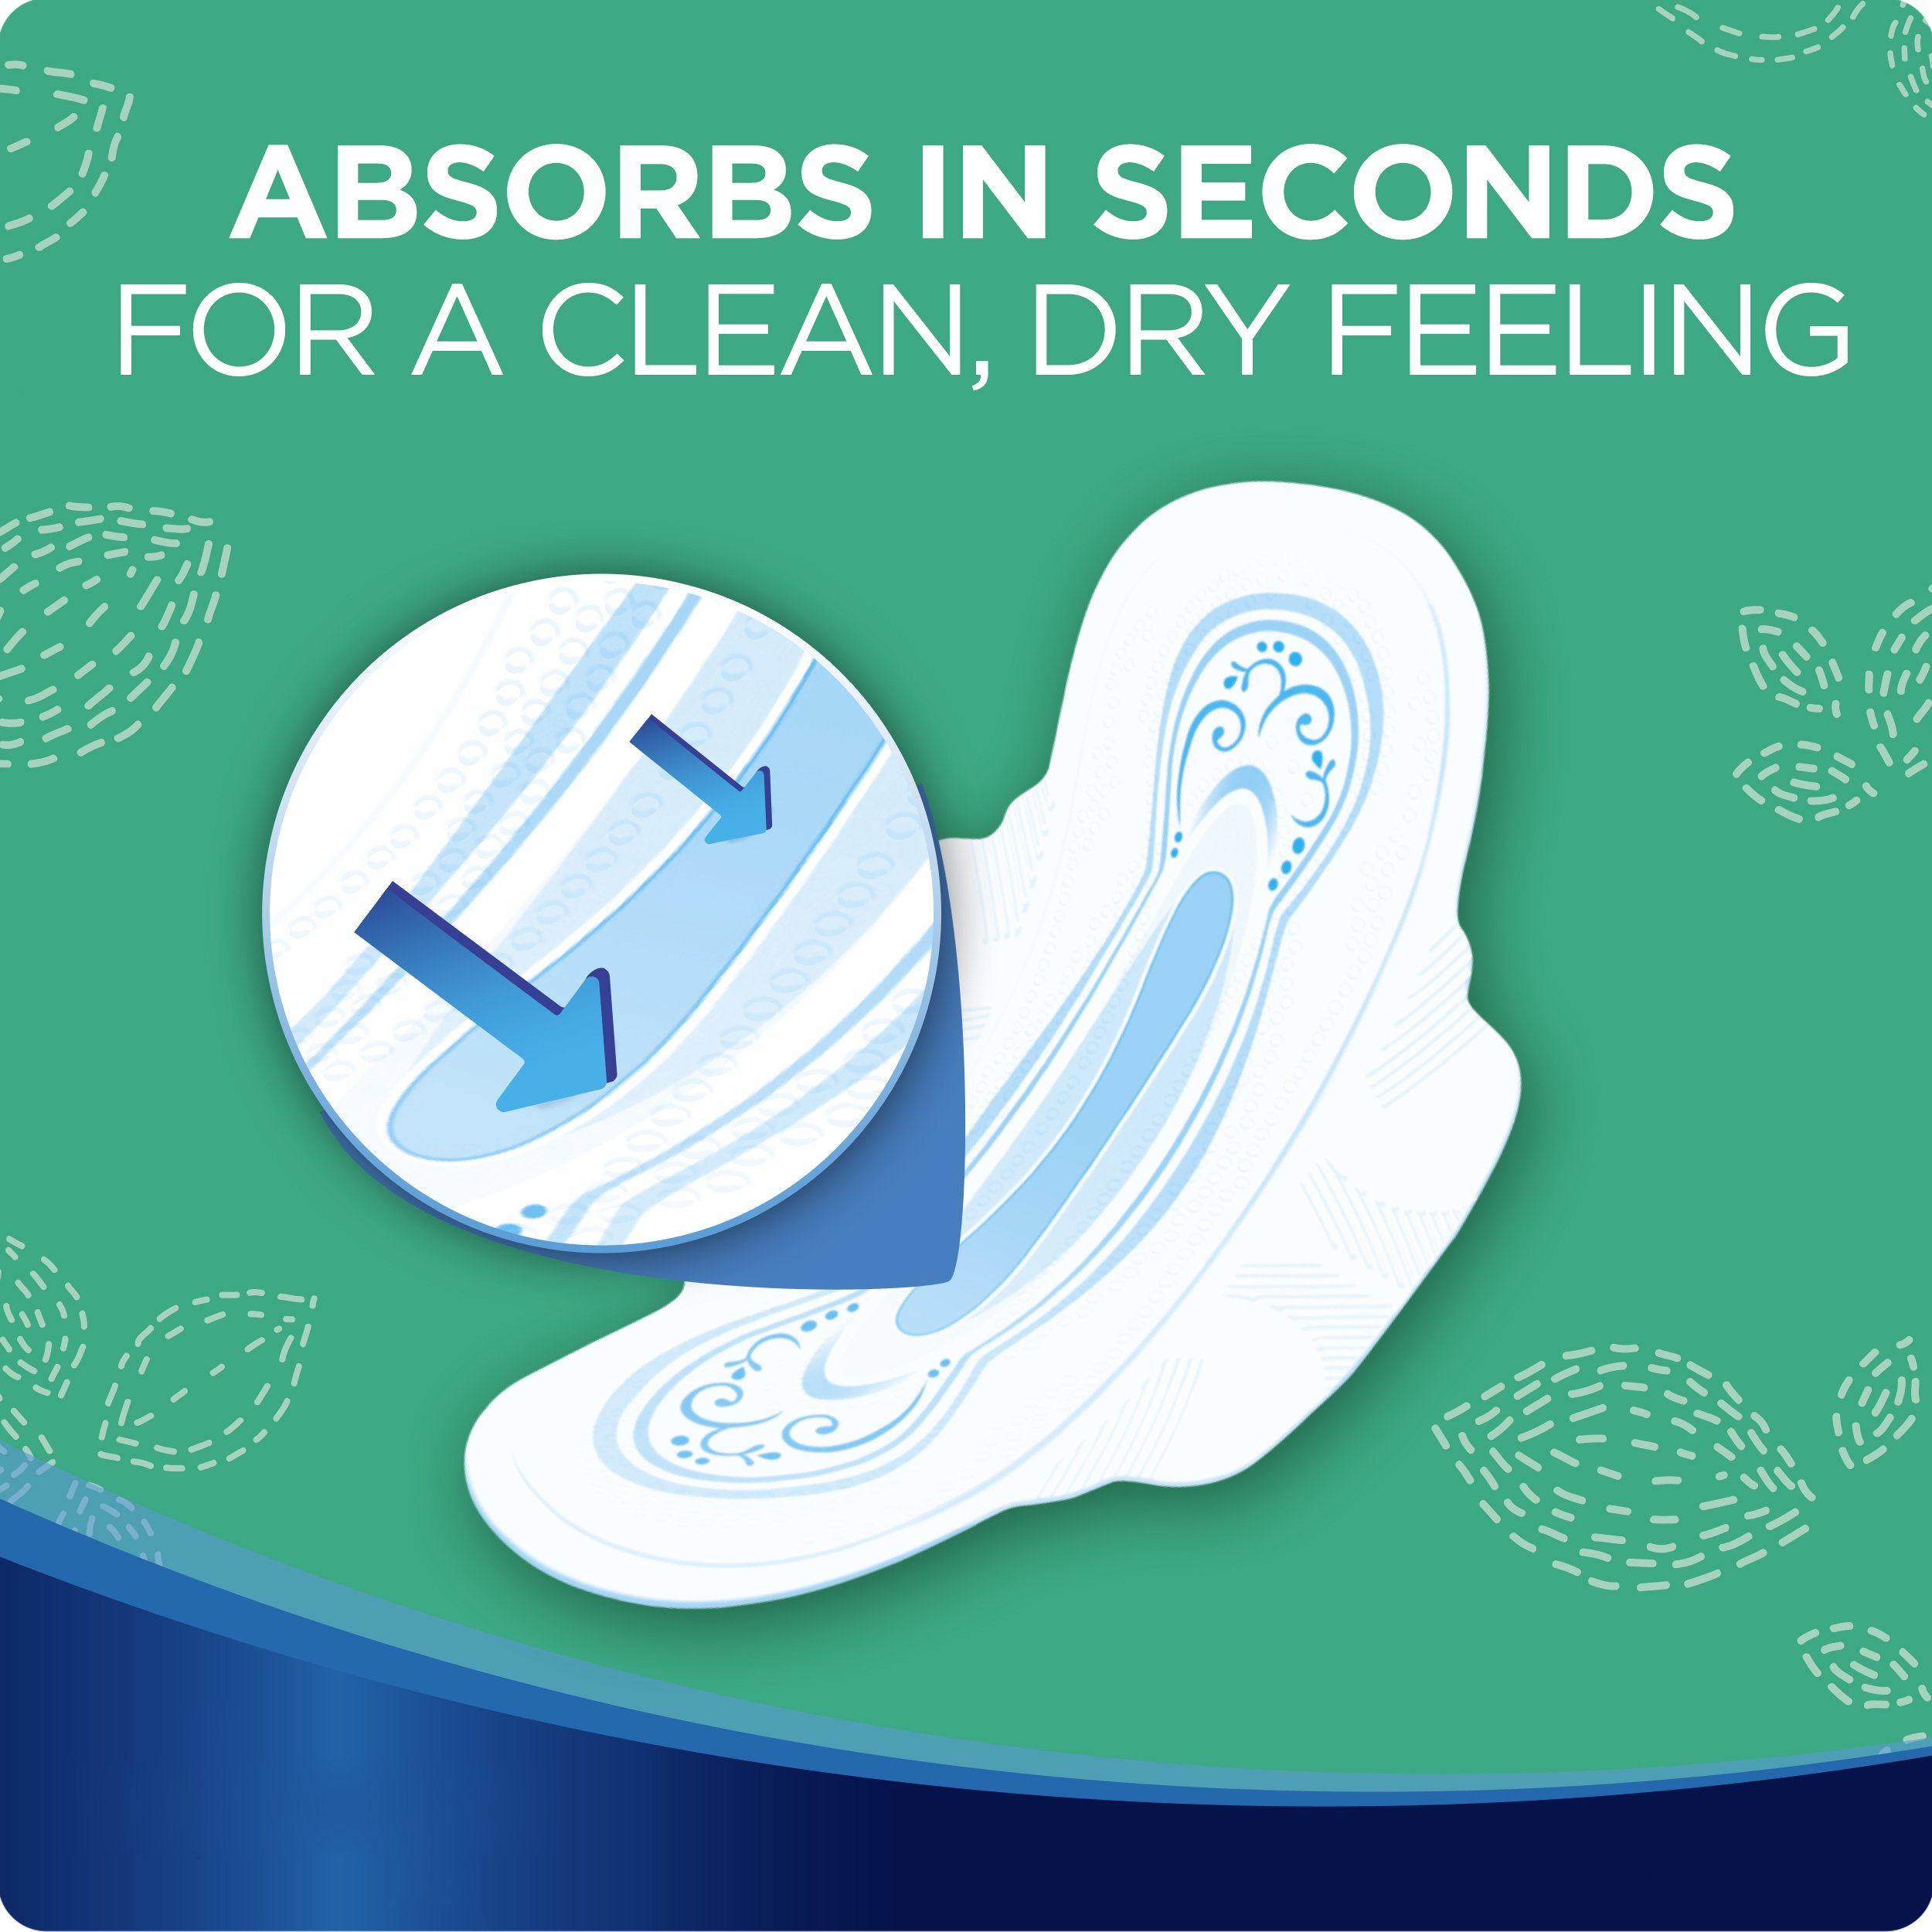 Always Ultra Thin Size 3, Super Absorbency Feminine Pads with Wings, Extra Long, Unscented, 28 Count - Pack of 3 (84 Total Count)